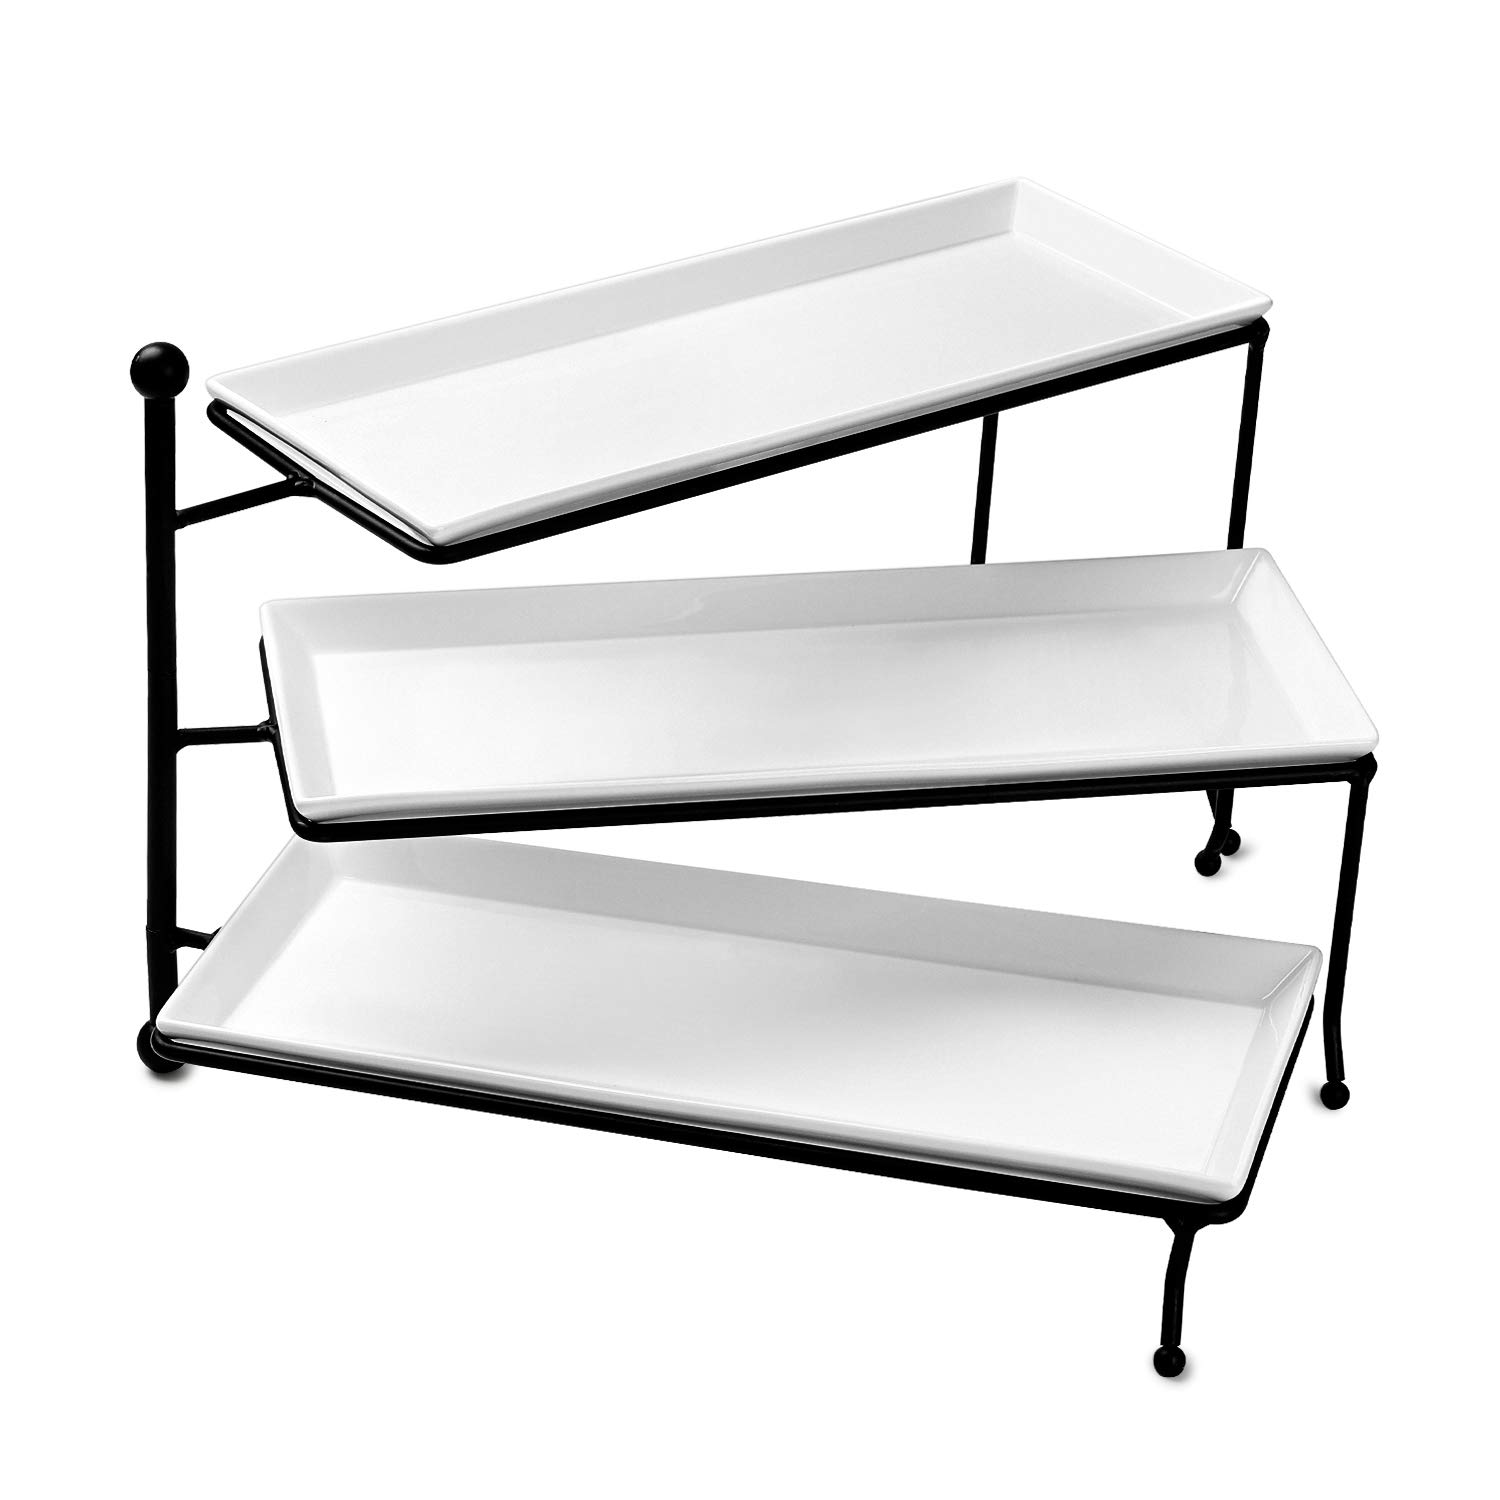 Sweese 3313 3 Tiered Serving Stand/Foldable Rectangular Food Display Stand with White Porcelain Platters - Serving Trays for Parties